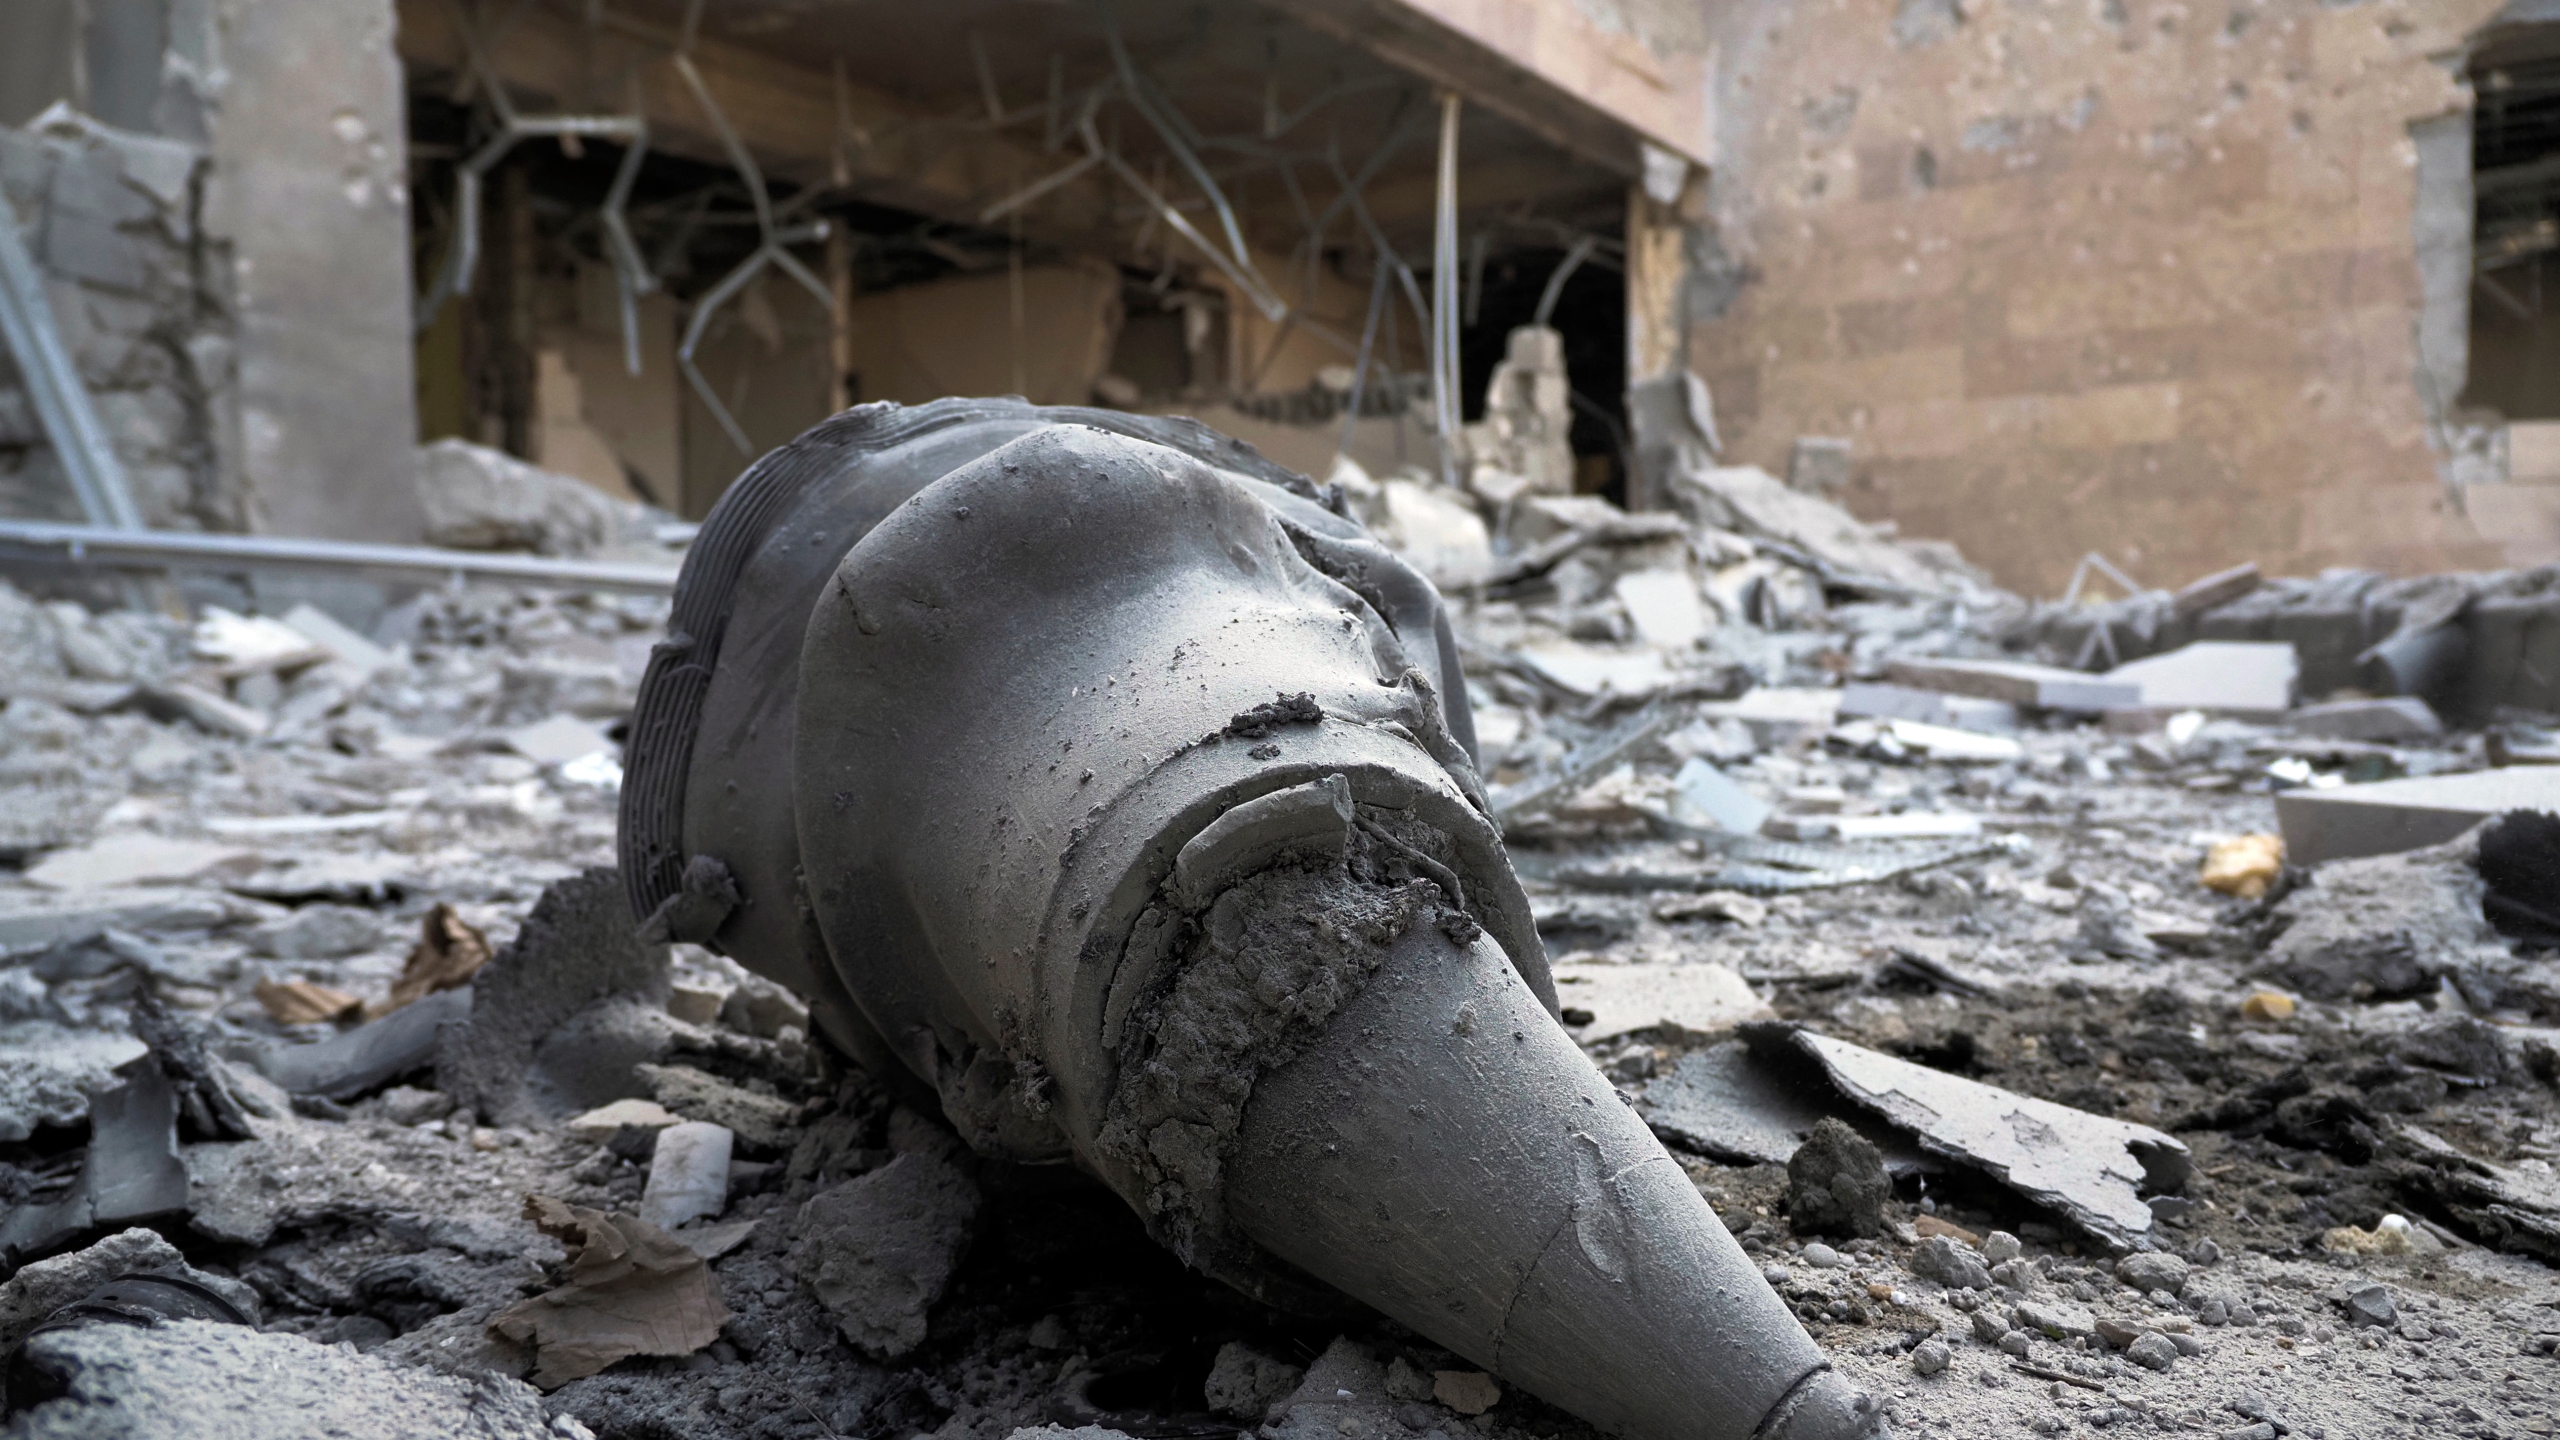 A rocket front fragment lies at a newly built natal center damaged by shelling by Azerbaijan's artillery in Stepanakert, the separatist region of Nagorno-Karabakh, on Oct. 28, 2020. (Associated Press)